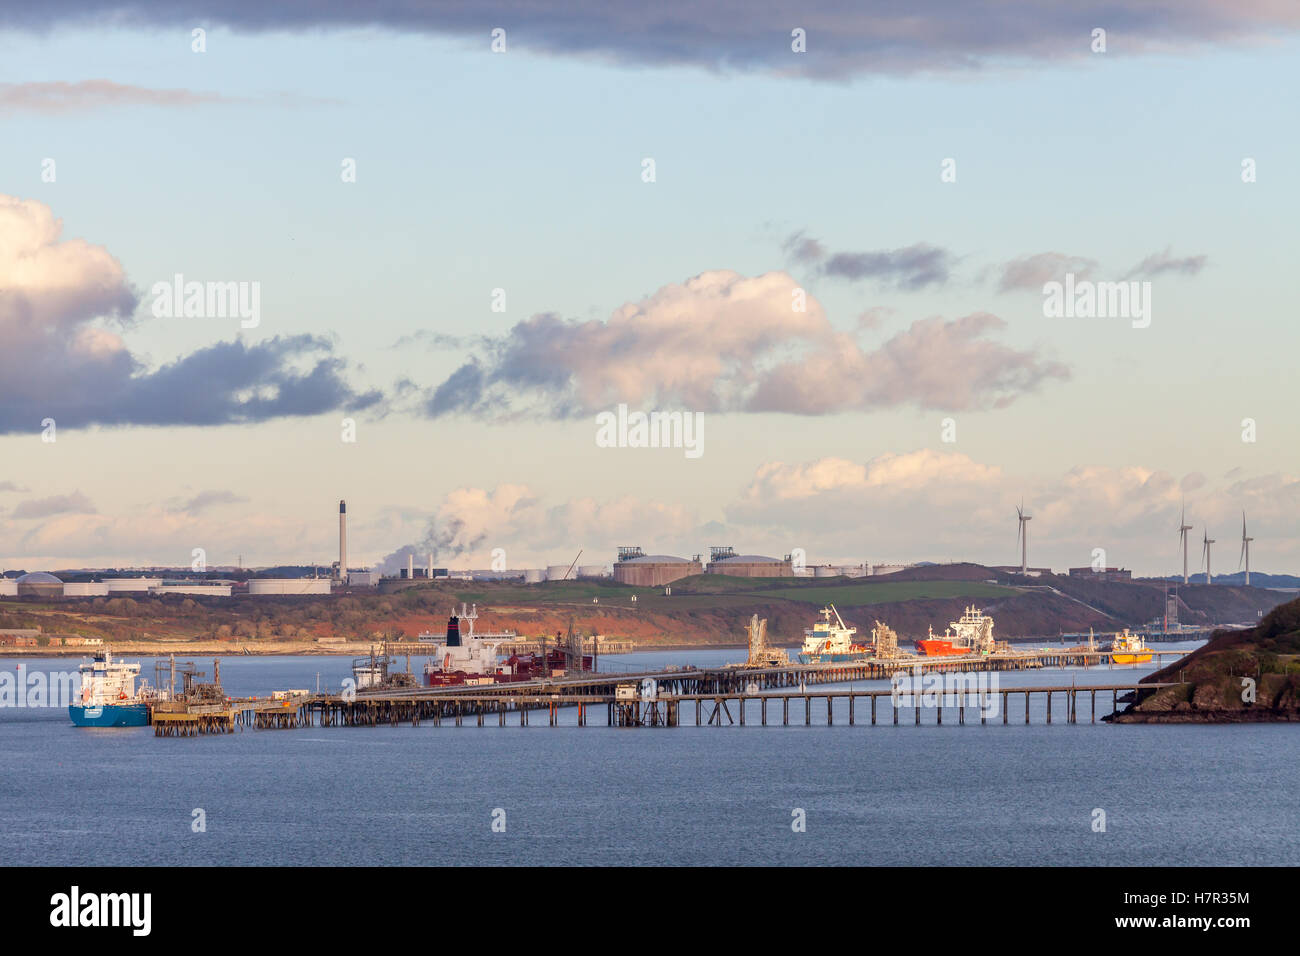 Milford Haven, Pembrokeshire, Oil and LNG terminals Stock Photo